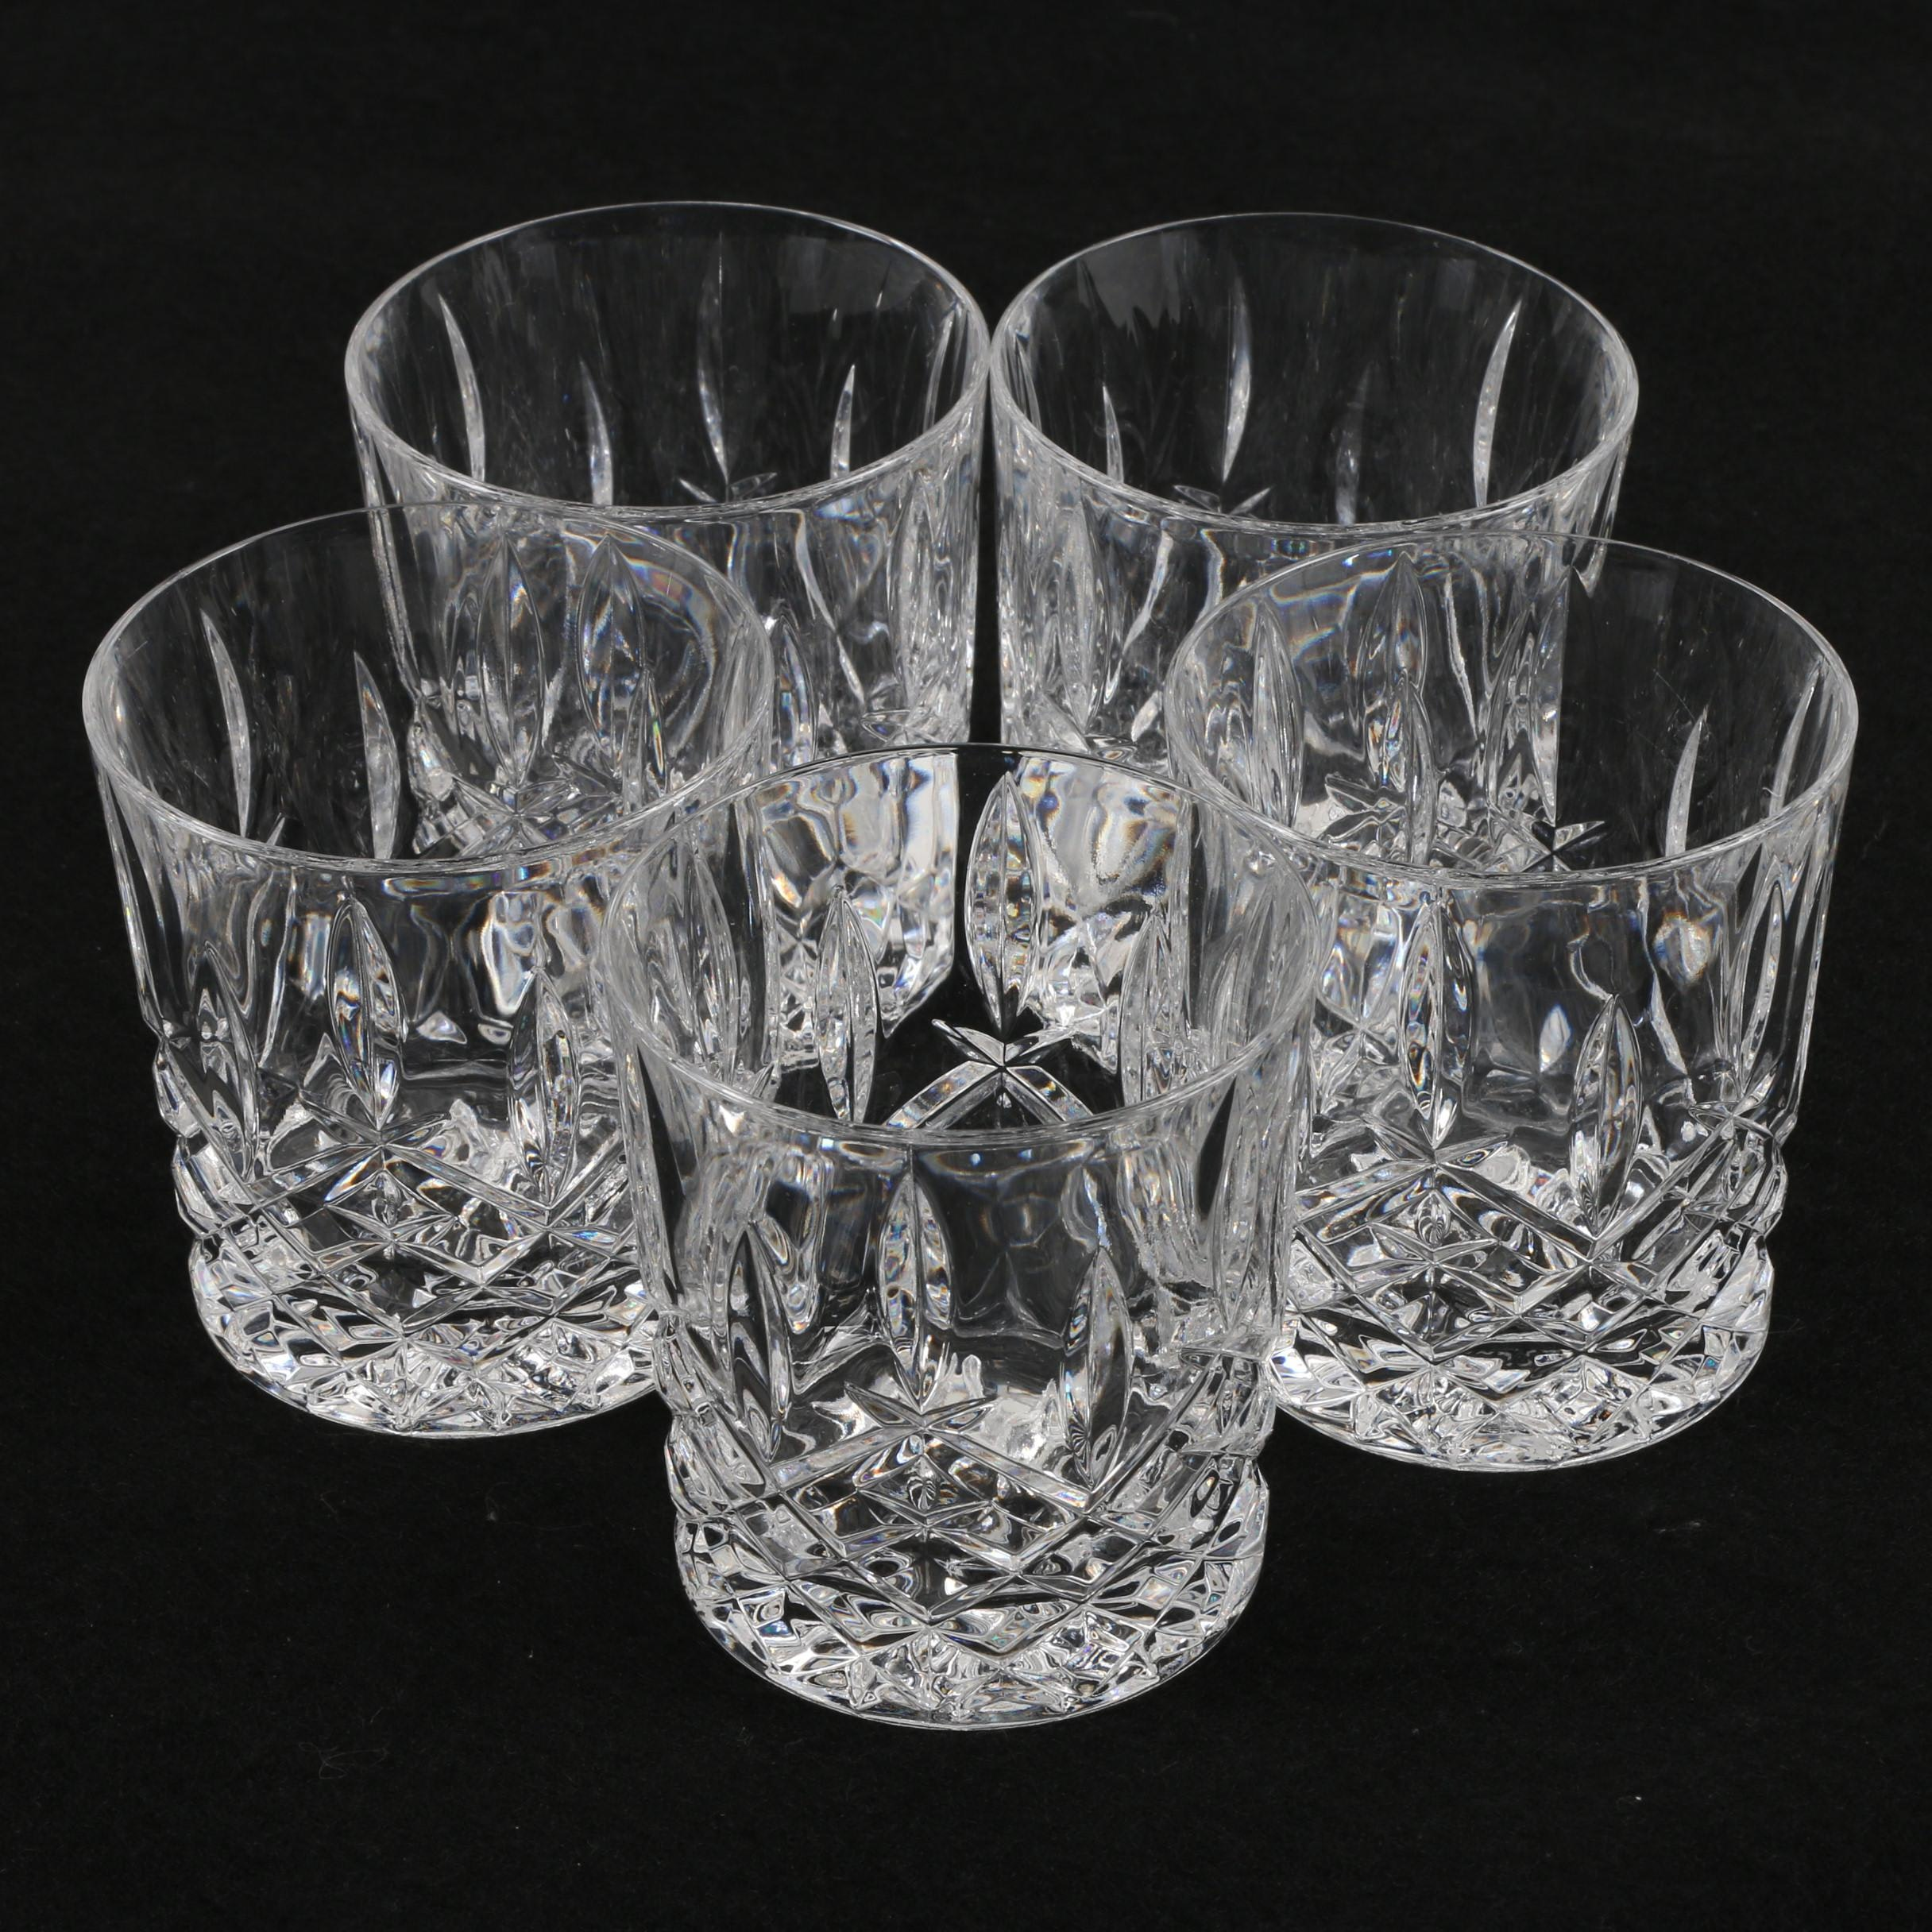 Killarney Crystal Old Fashioned Glasses